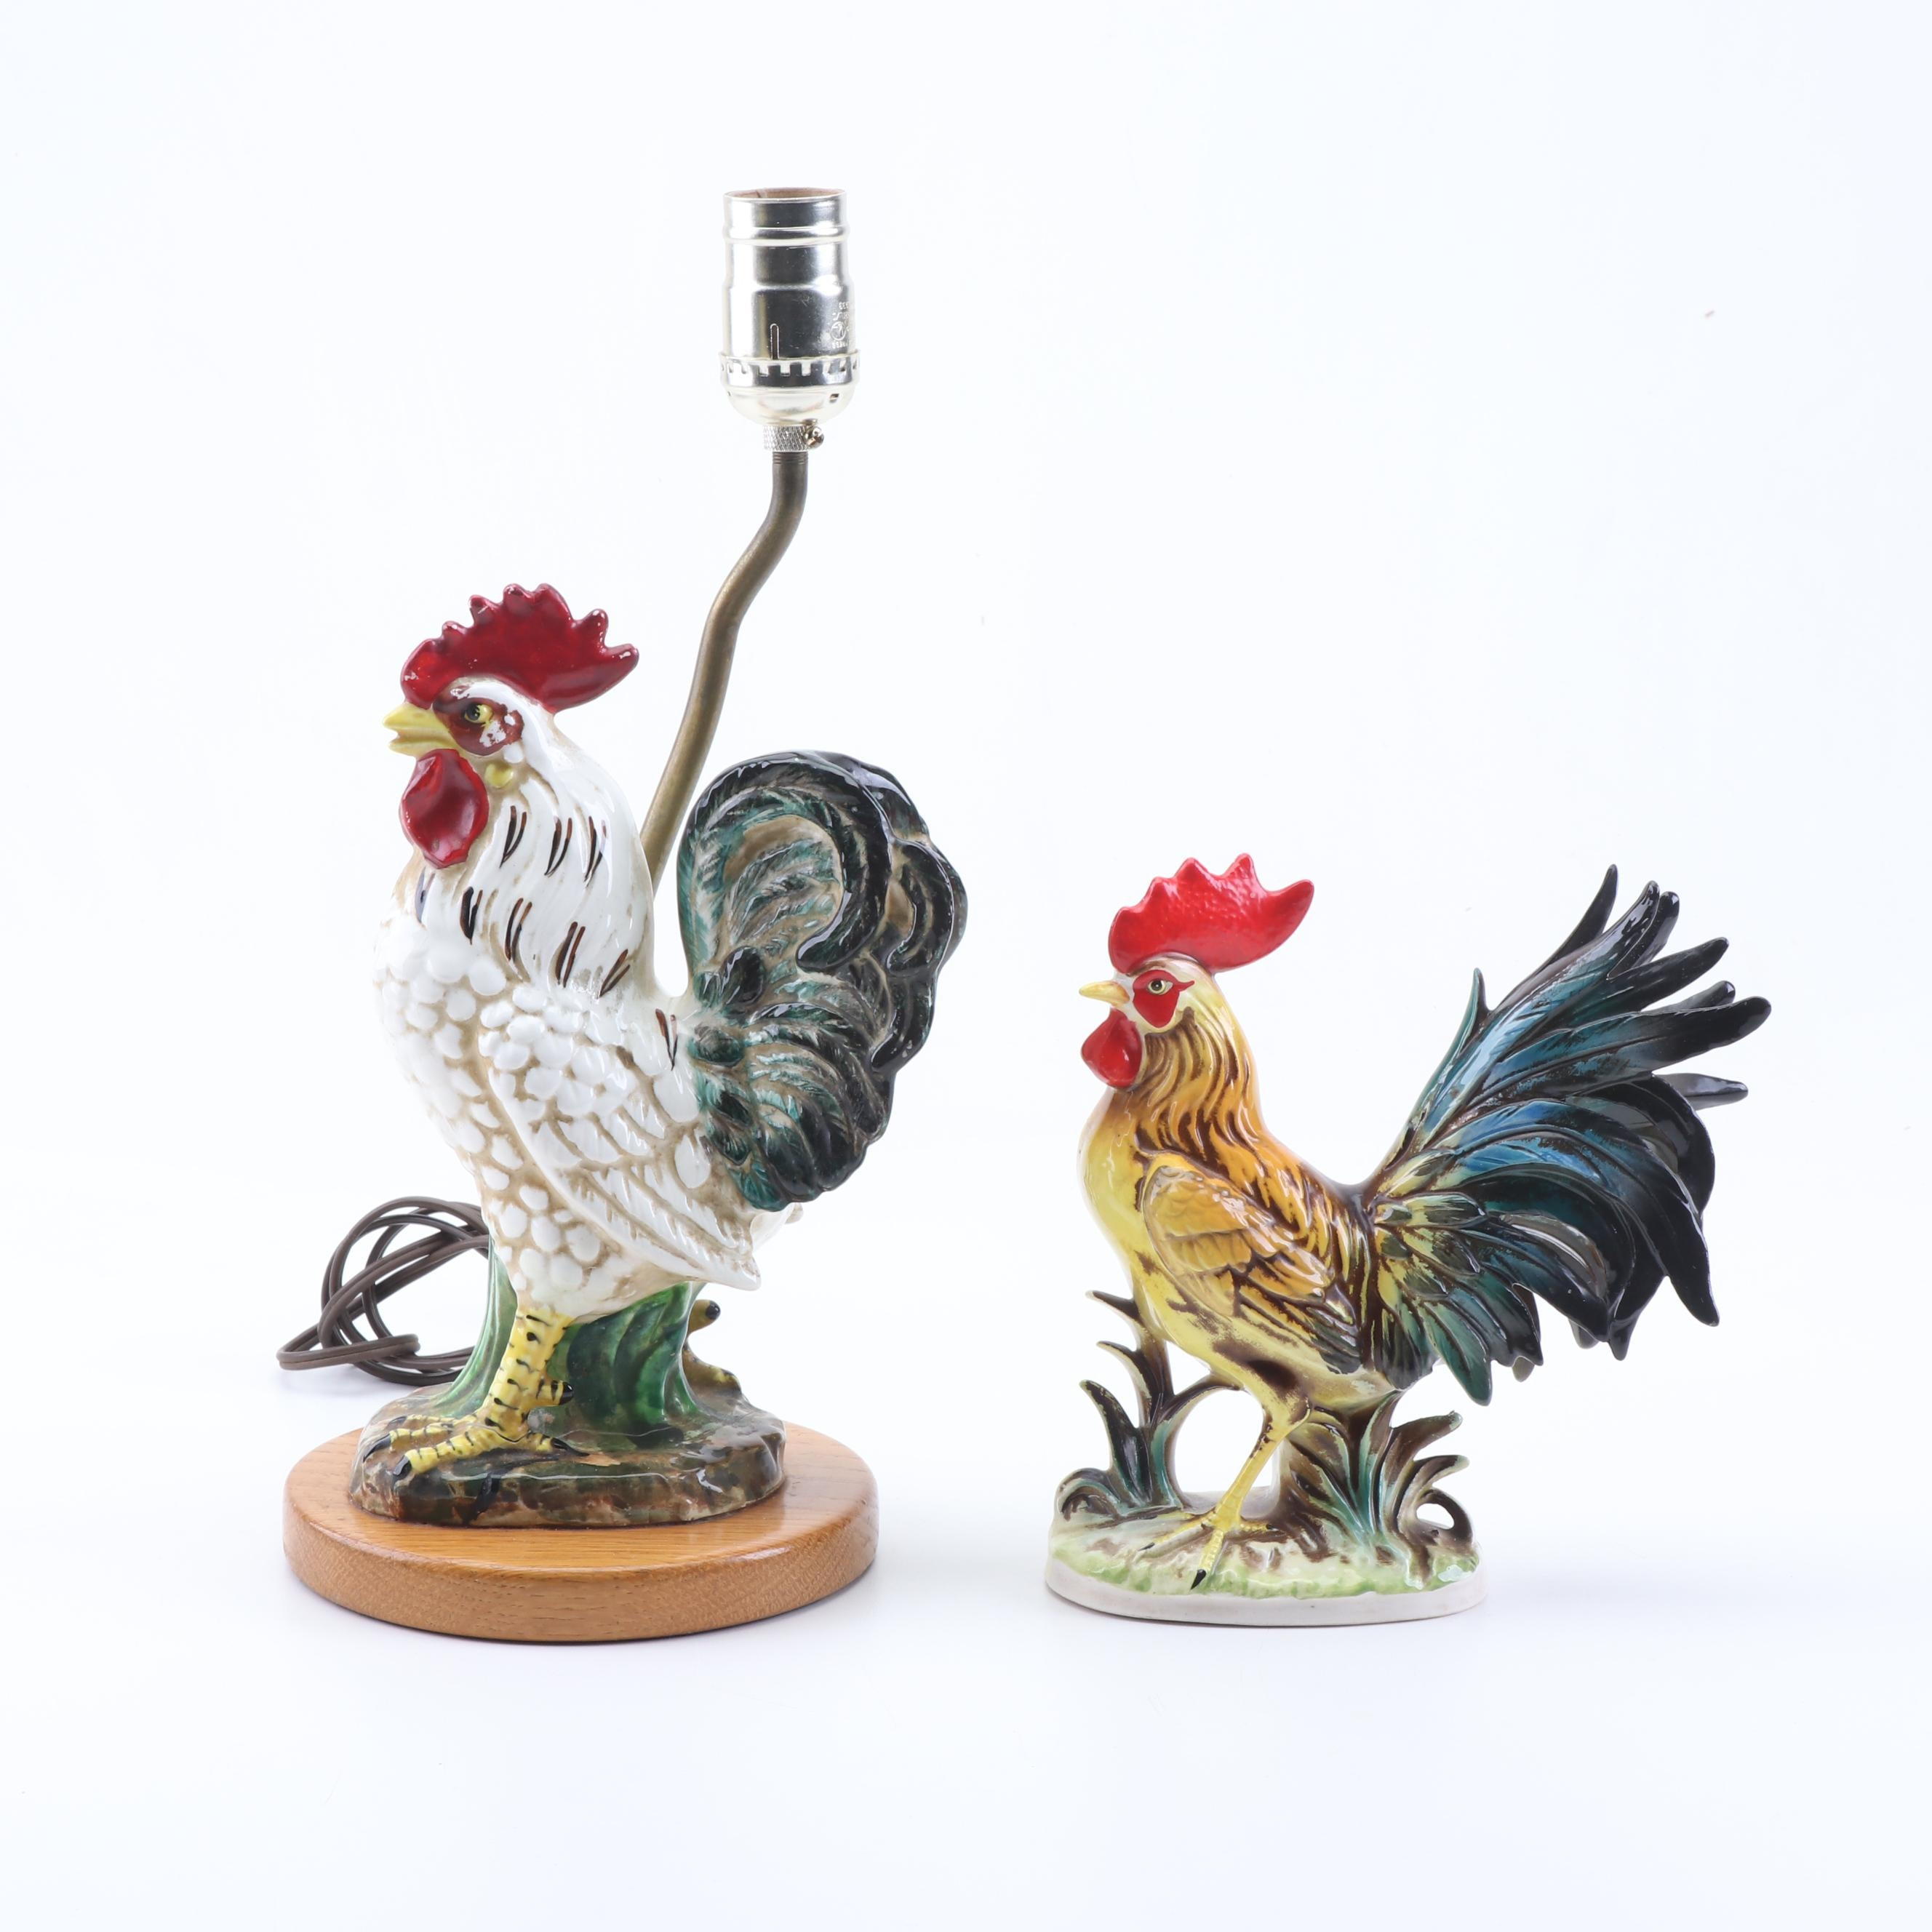 Ceramic Rooster Figurine and Desk Lamp